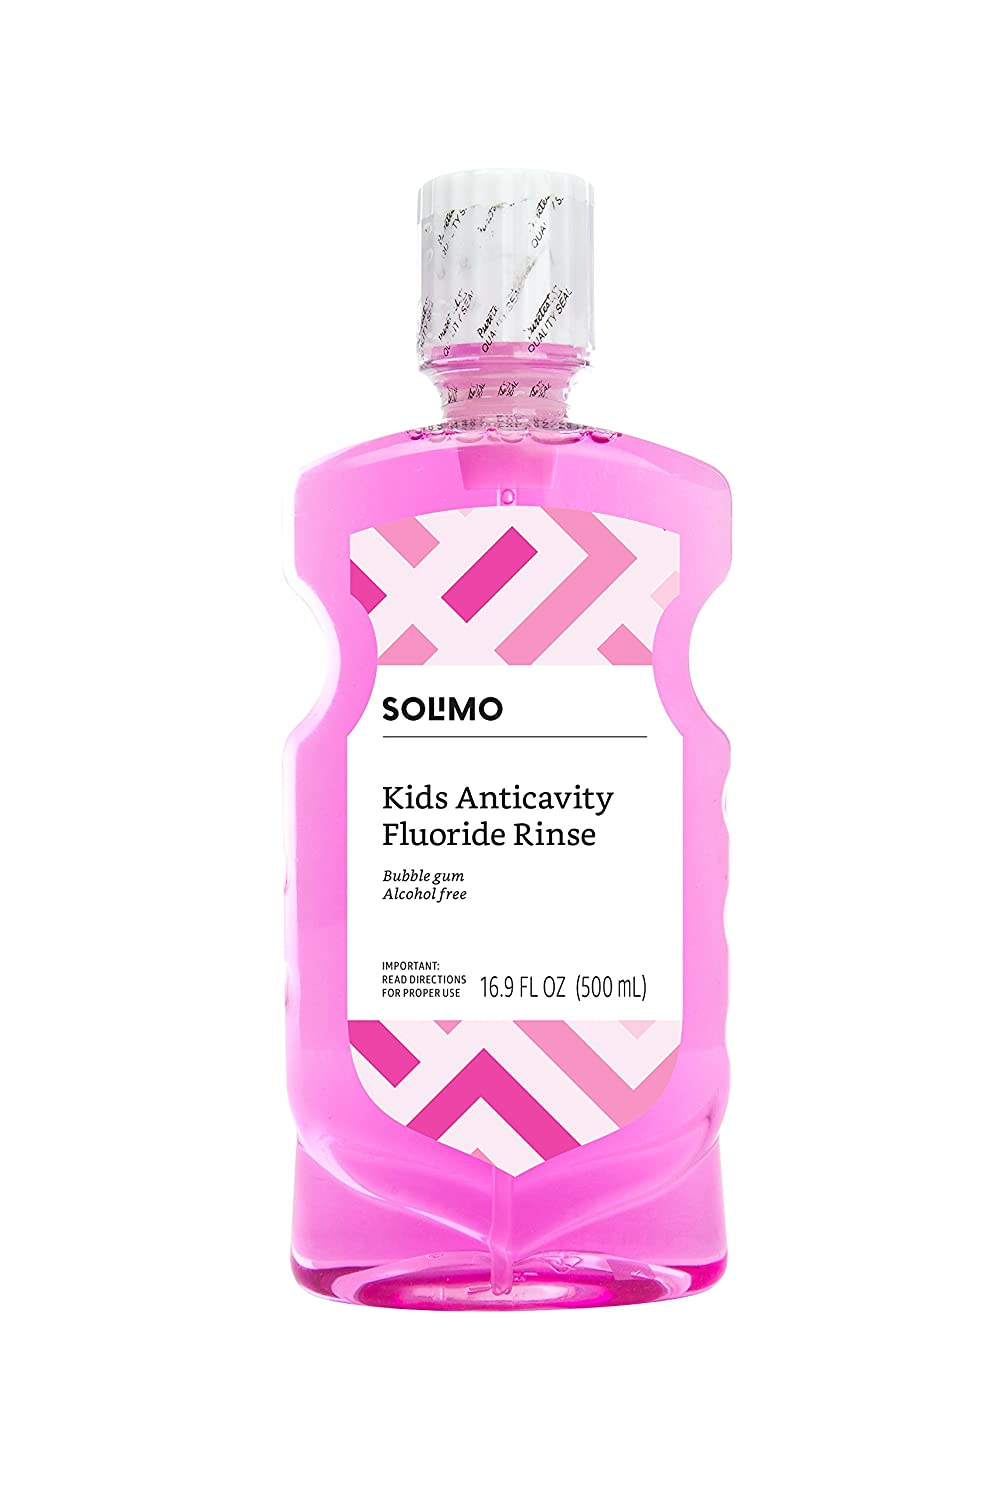 Amazon Brand - Solimo Kids Anticavity Fluoride Rinse, Alcohol Free, Bubble Gum, 16.9 fl oz